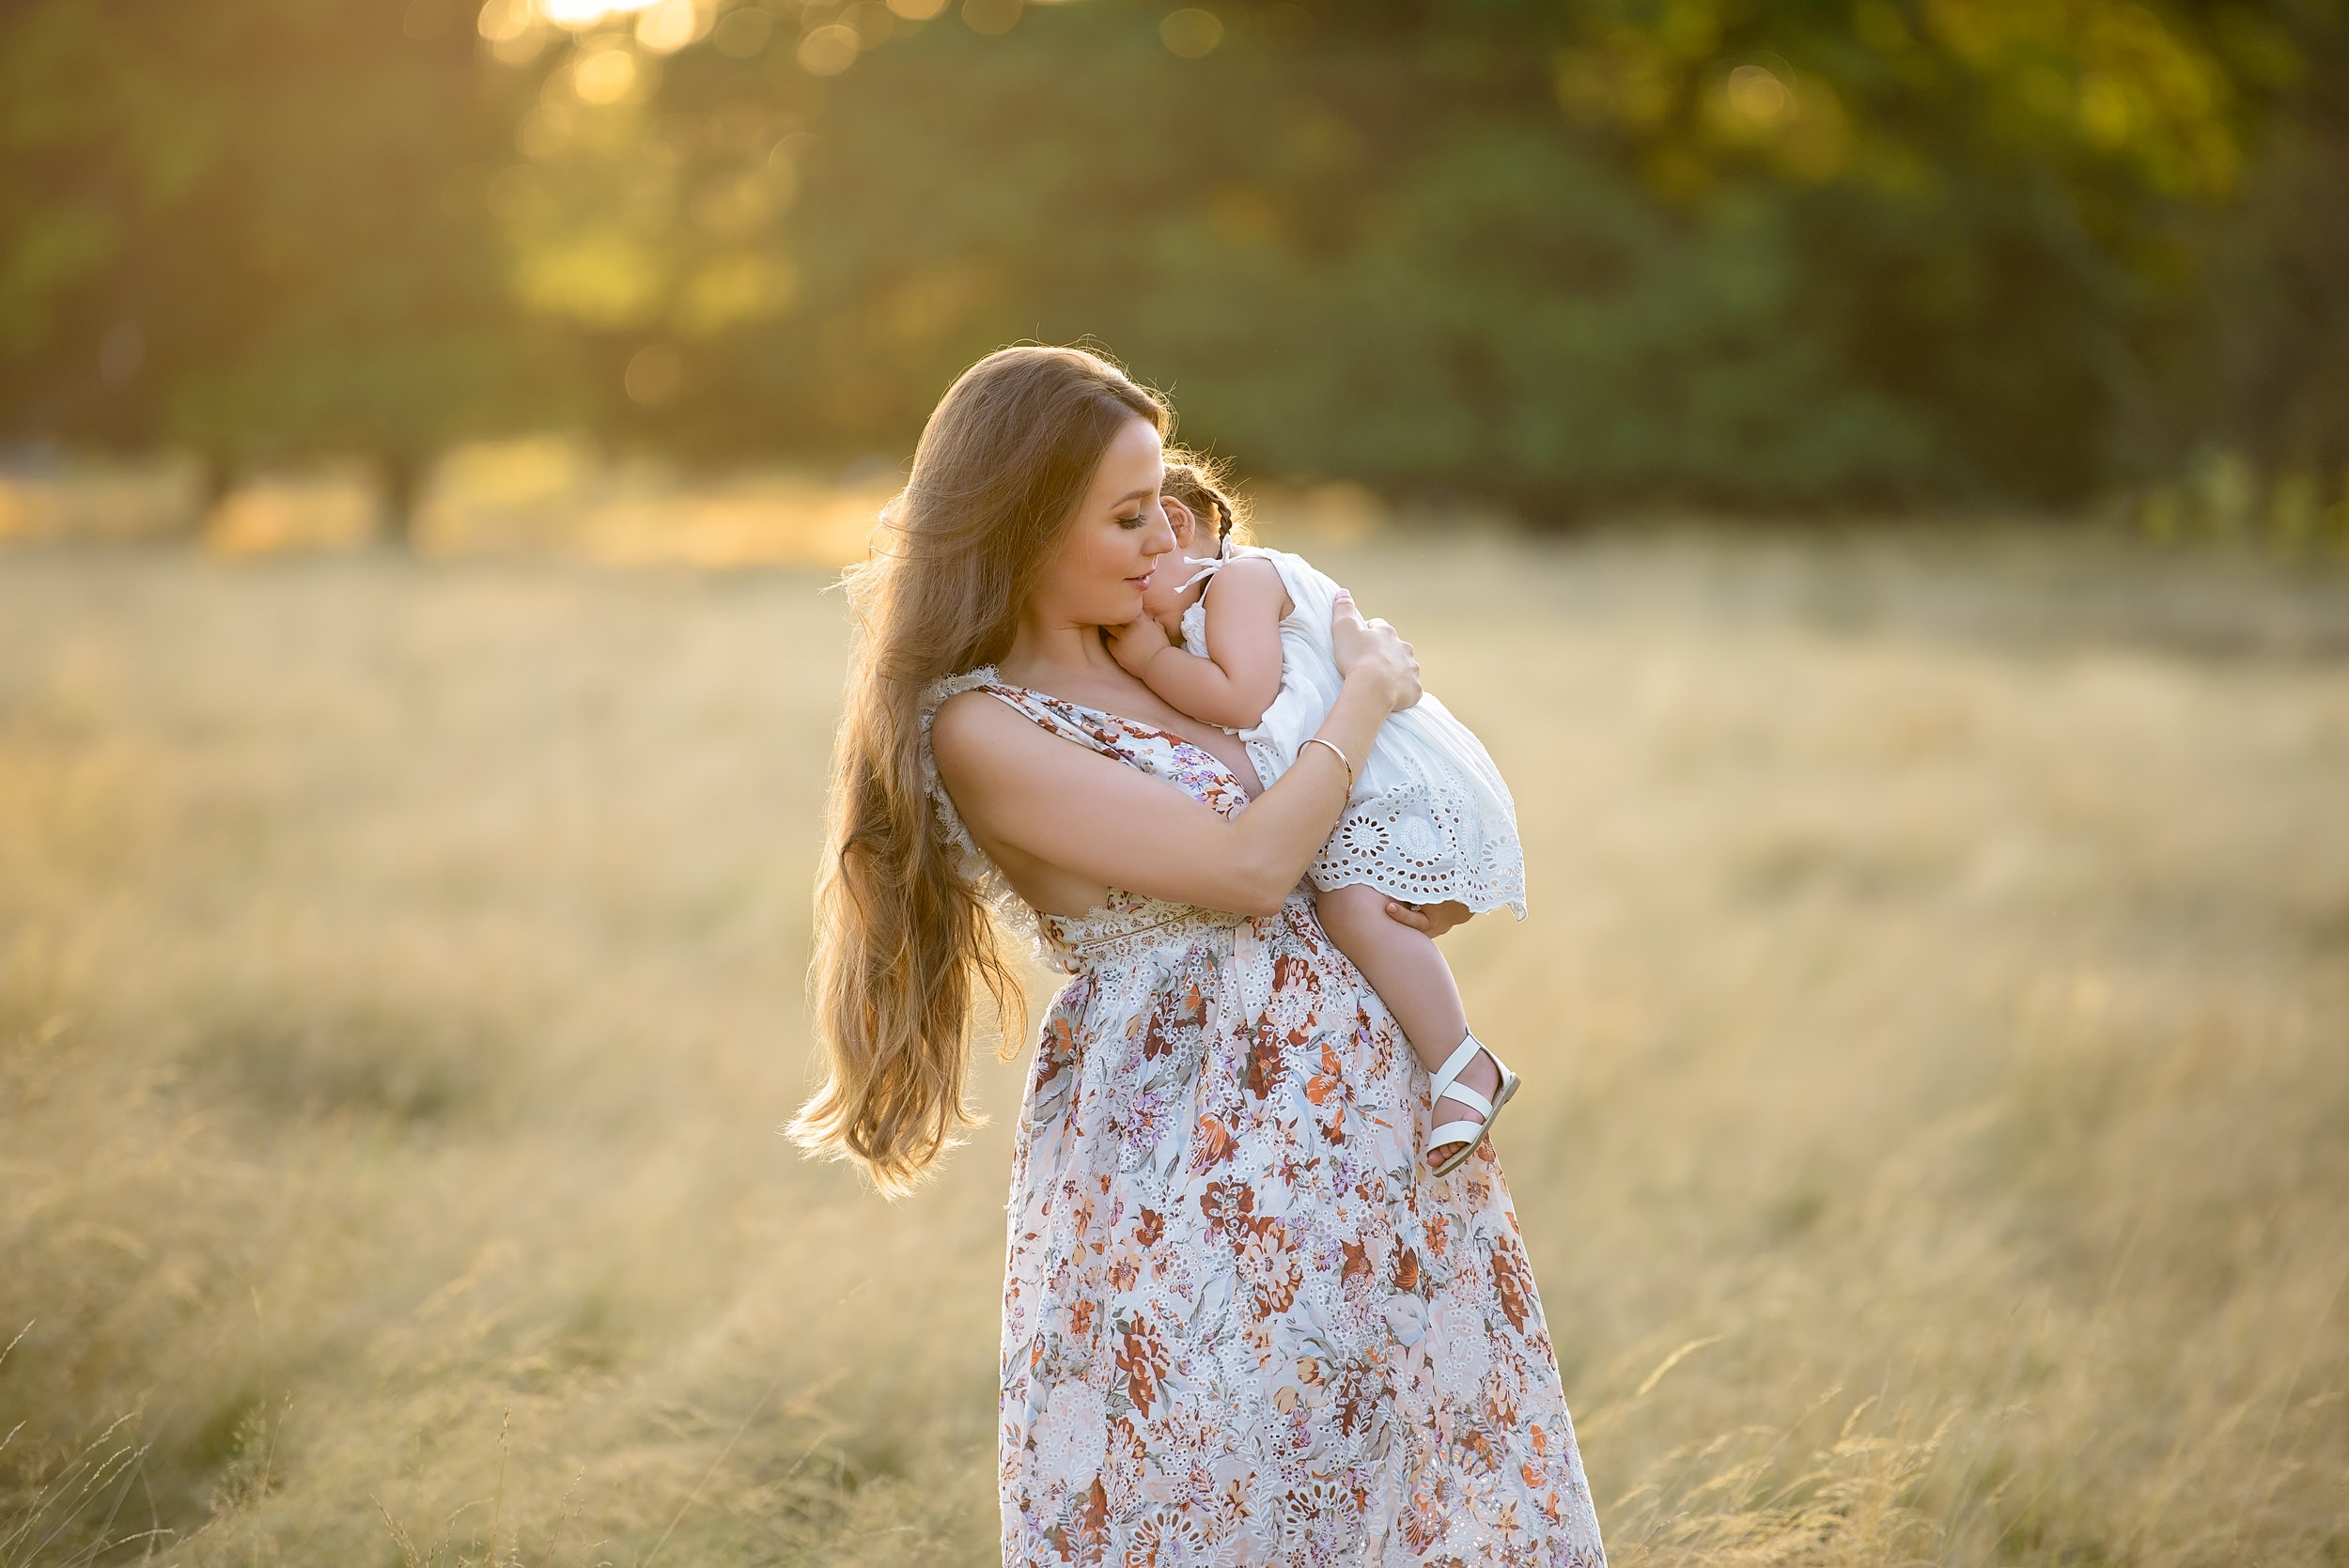 Award winning sunset portraits of families | London